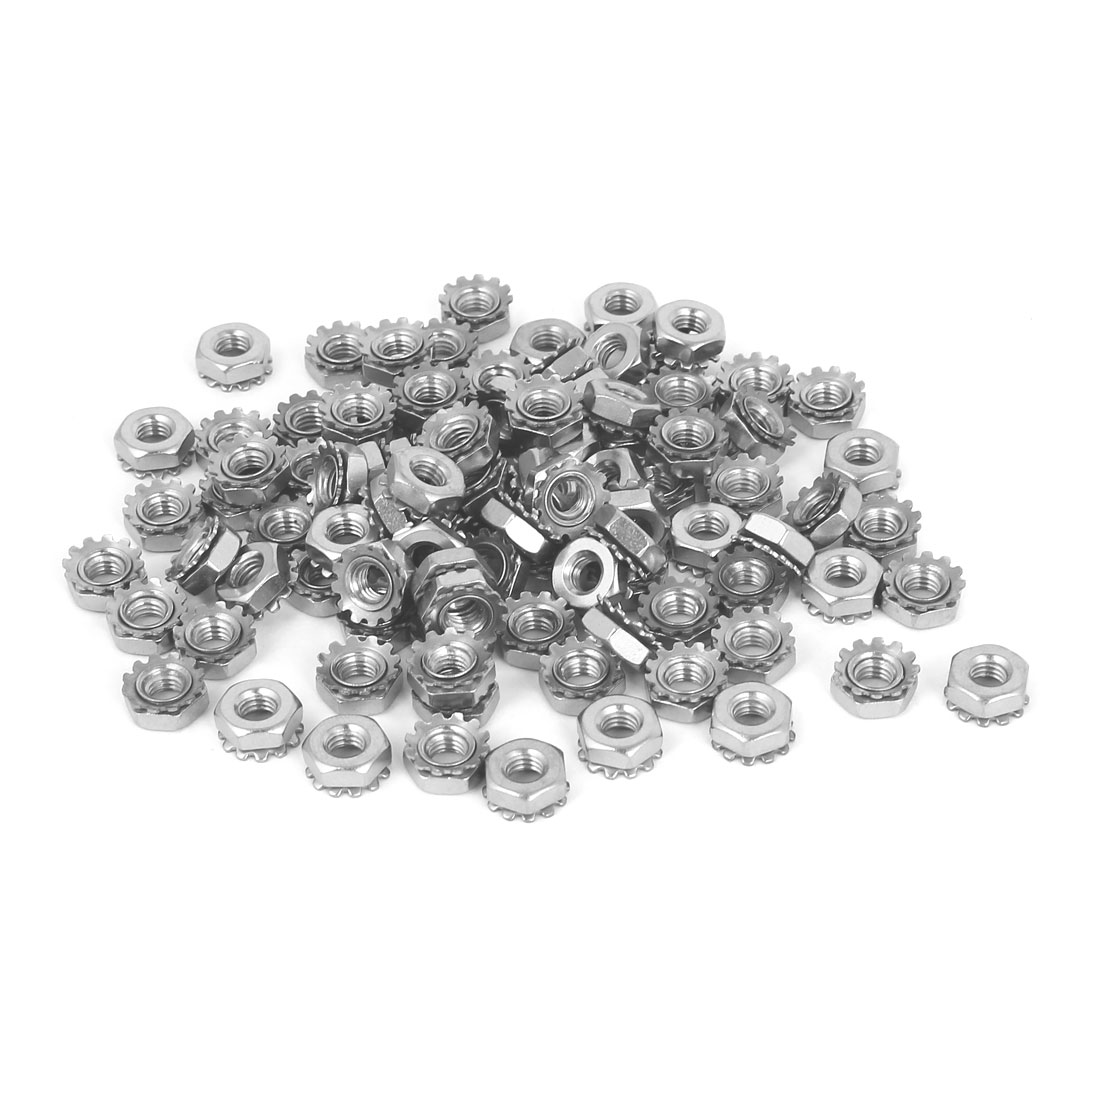 10#-32 304 Stainless Steel External Tooth Kep Nuts Locknuts Silver Tone 100 Pcs